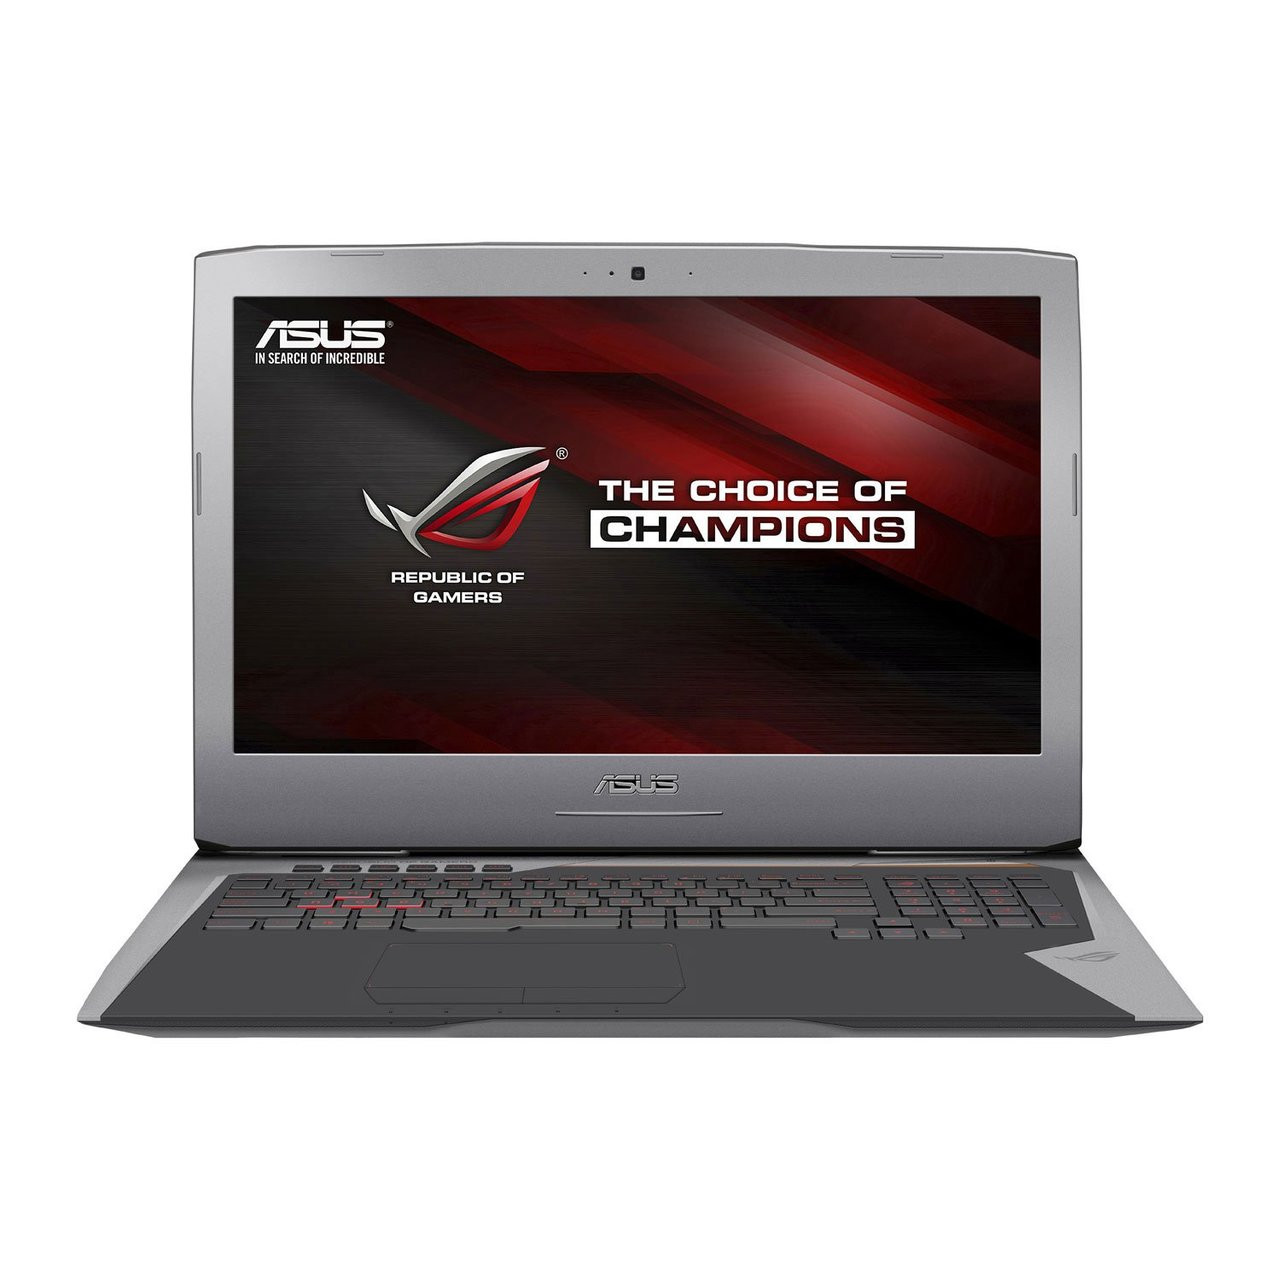 ASUS ROG G752VM NVIDIA GRAPHICS TREIBER WINDOWS 7